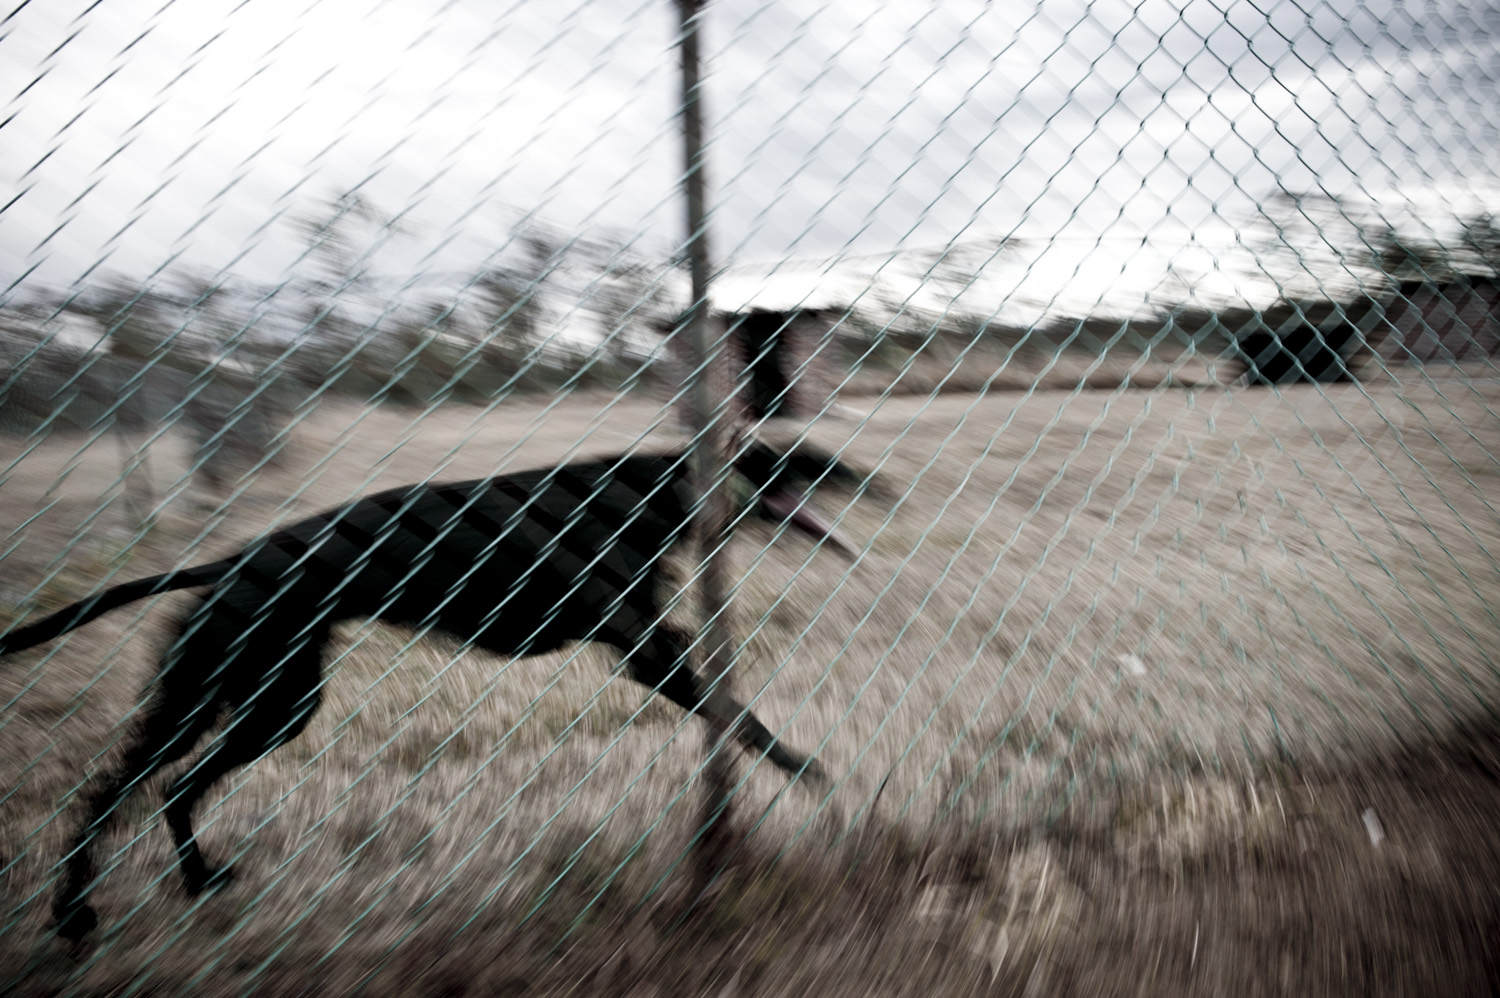 image of AARONTAIT COPYRIGHTED 2014 431 DOCUMENTARY PHOTOGRAPHER REPORTAGE LIFE SPORT DOGS GREYHOUND RACING STORY HUMAN DISHLICKER DISH LICKER BLACKDOG